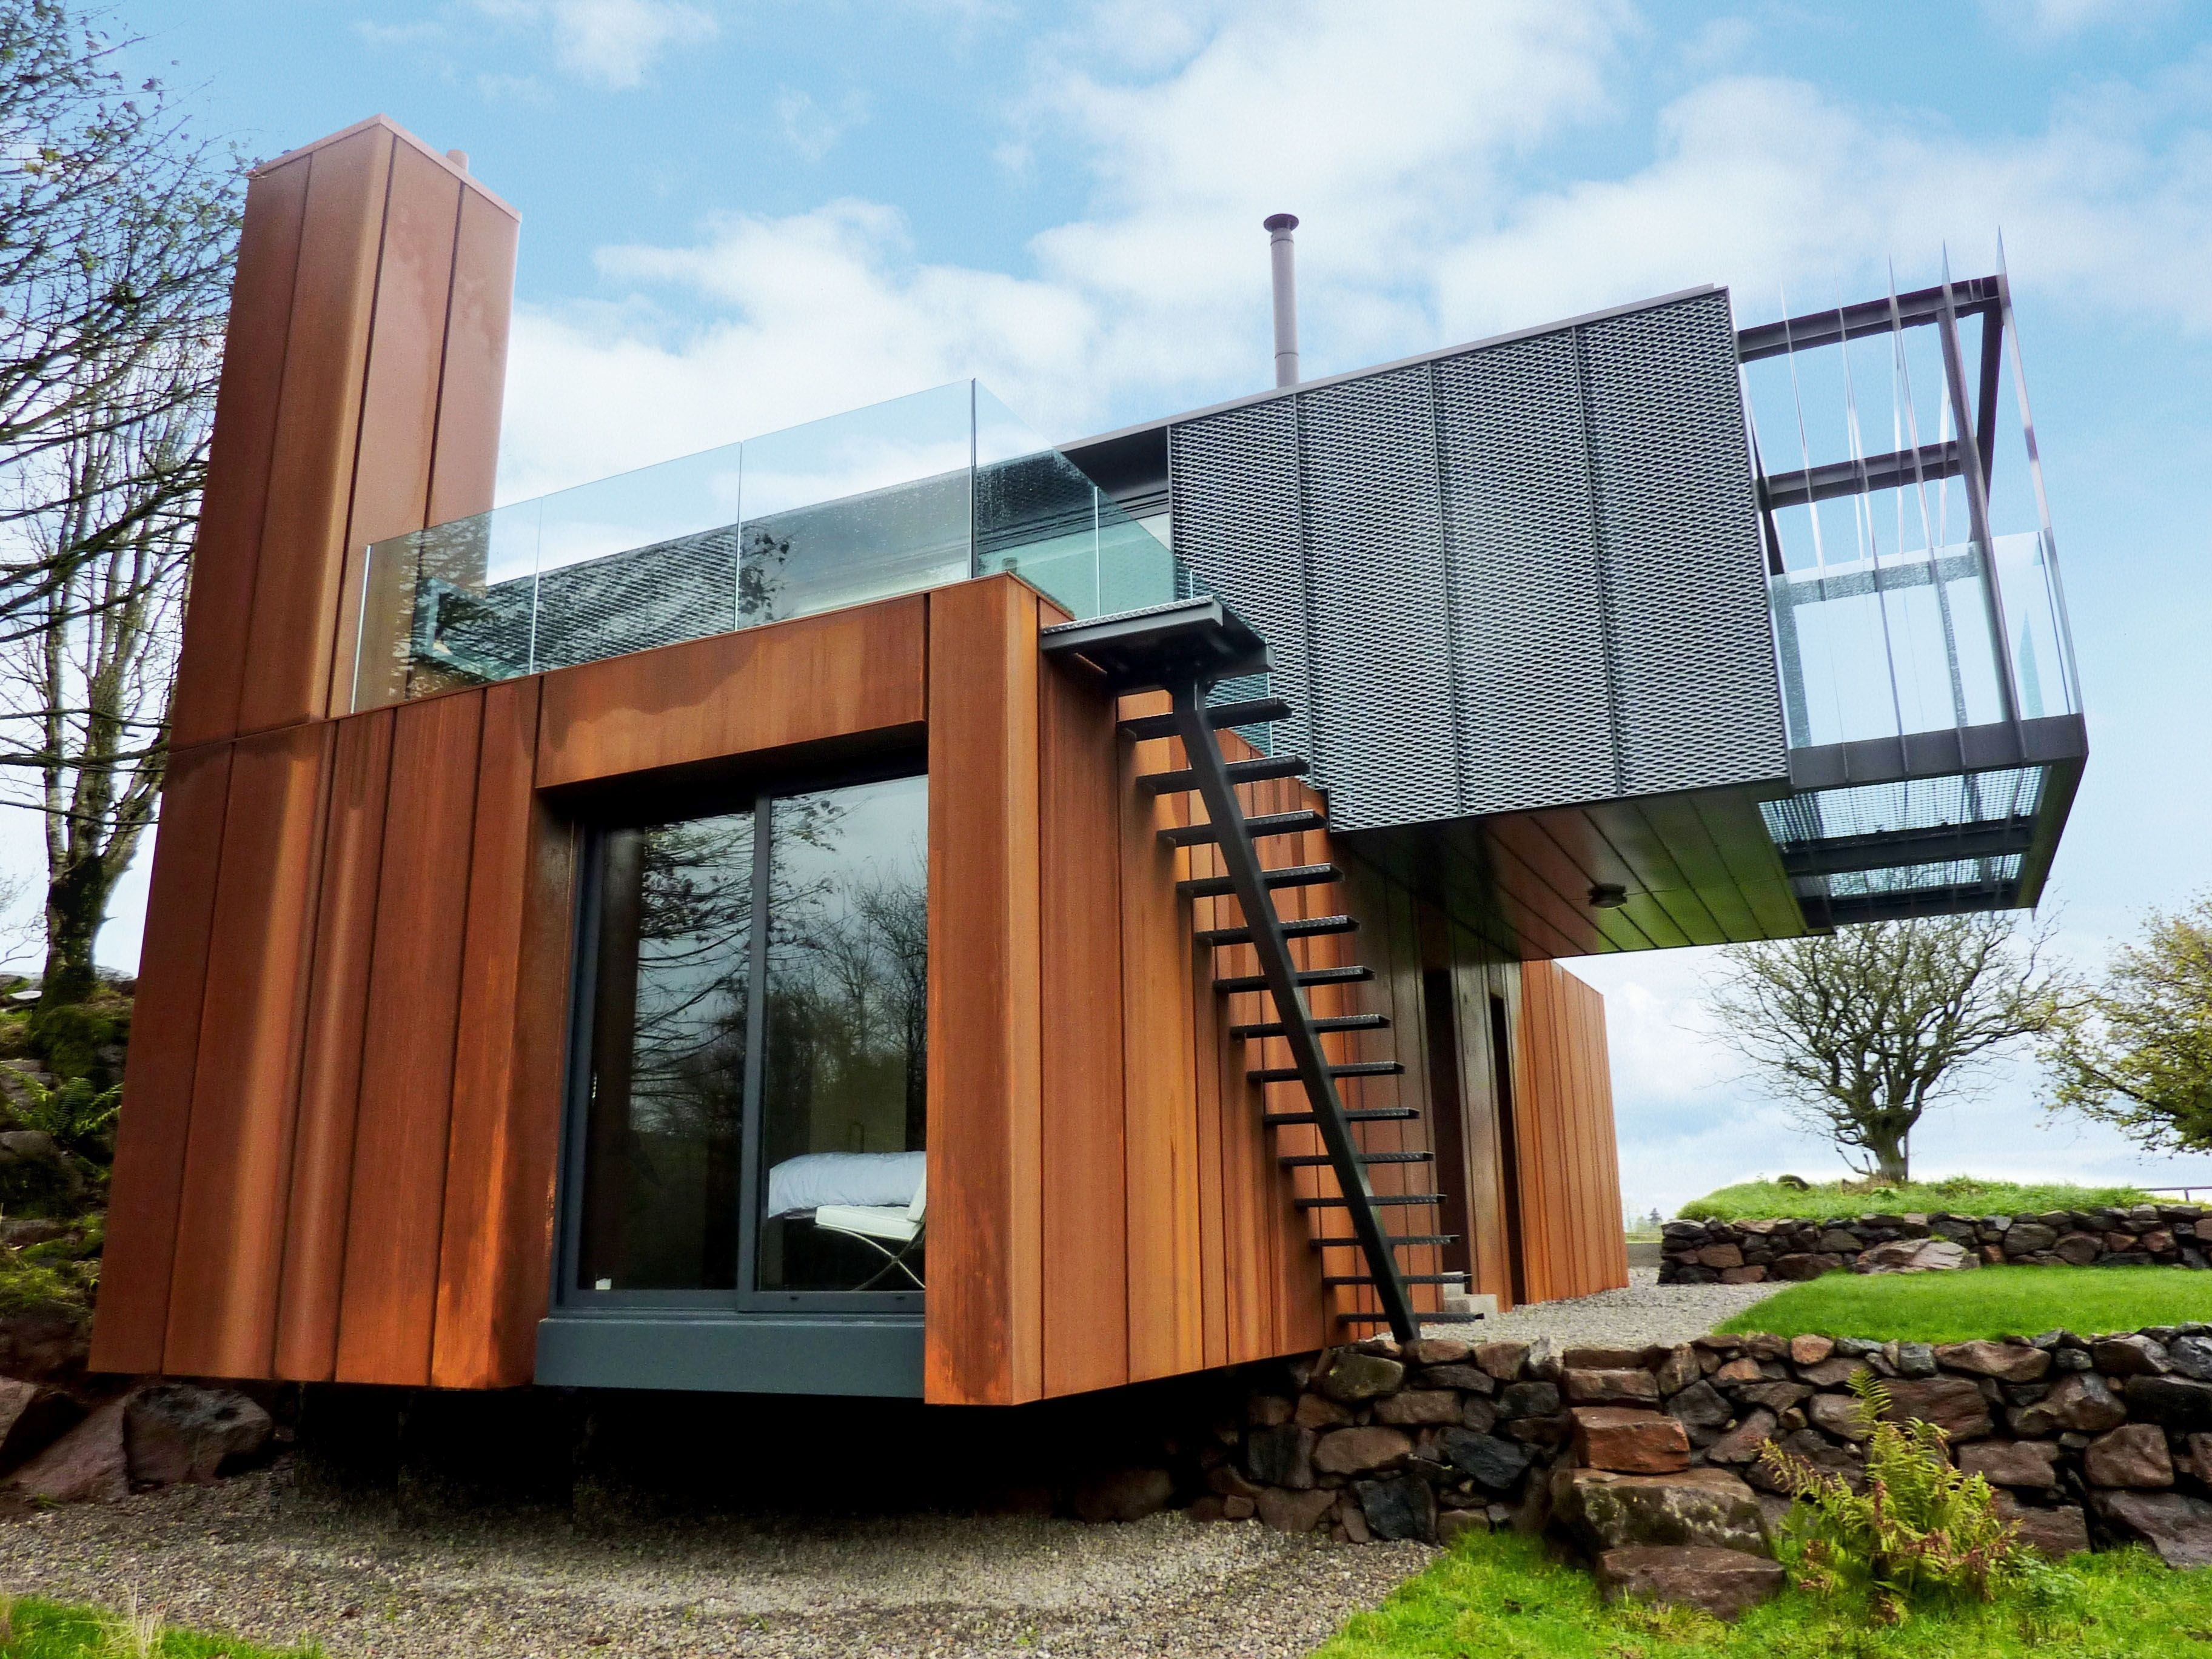 Shipping Container Homes Design Inspiration The Most Amazing